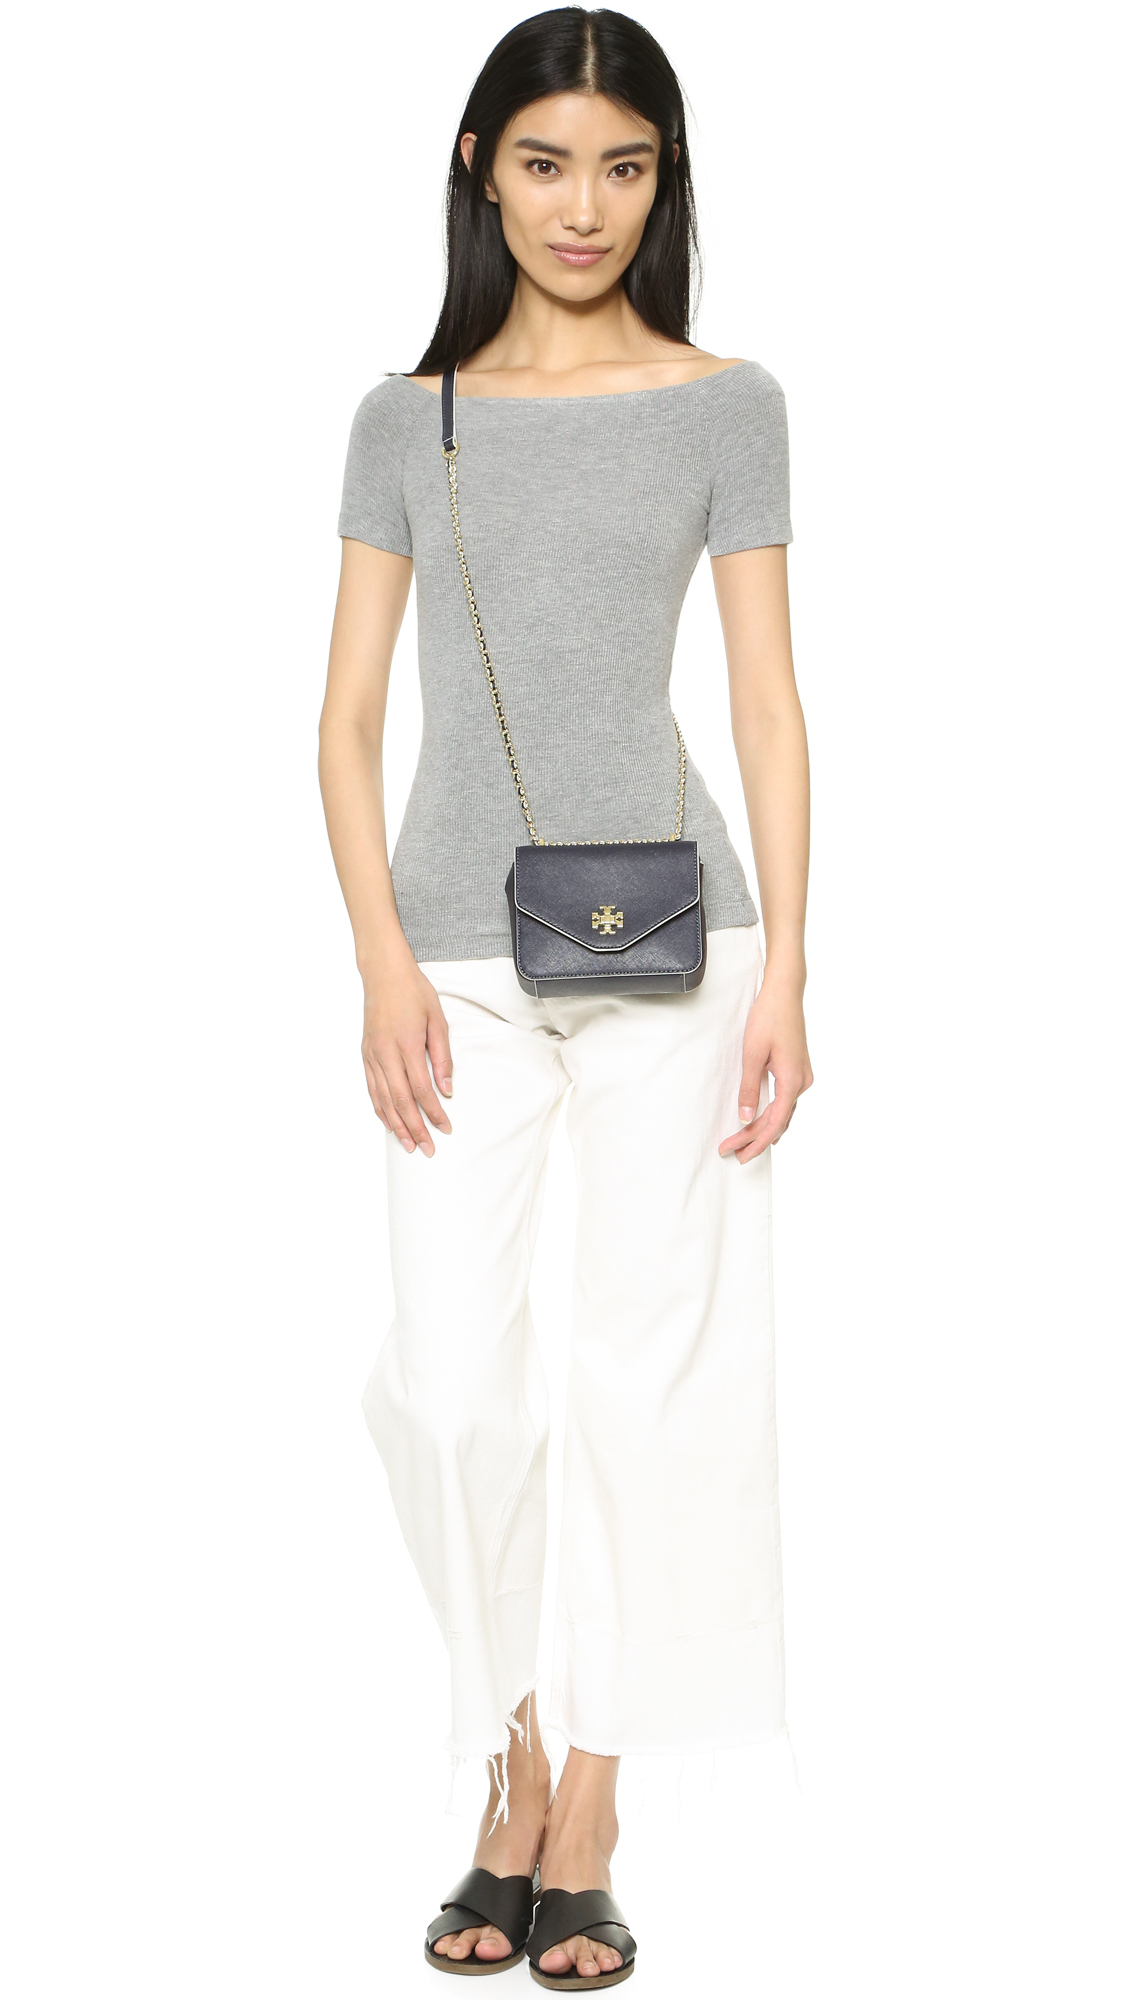 616cab5d93e6 Gallery. Previously sold at  Shopbop · Women s Cross Body Bags ...